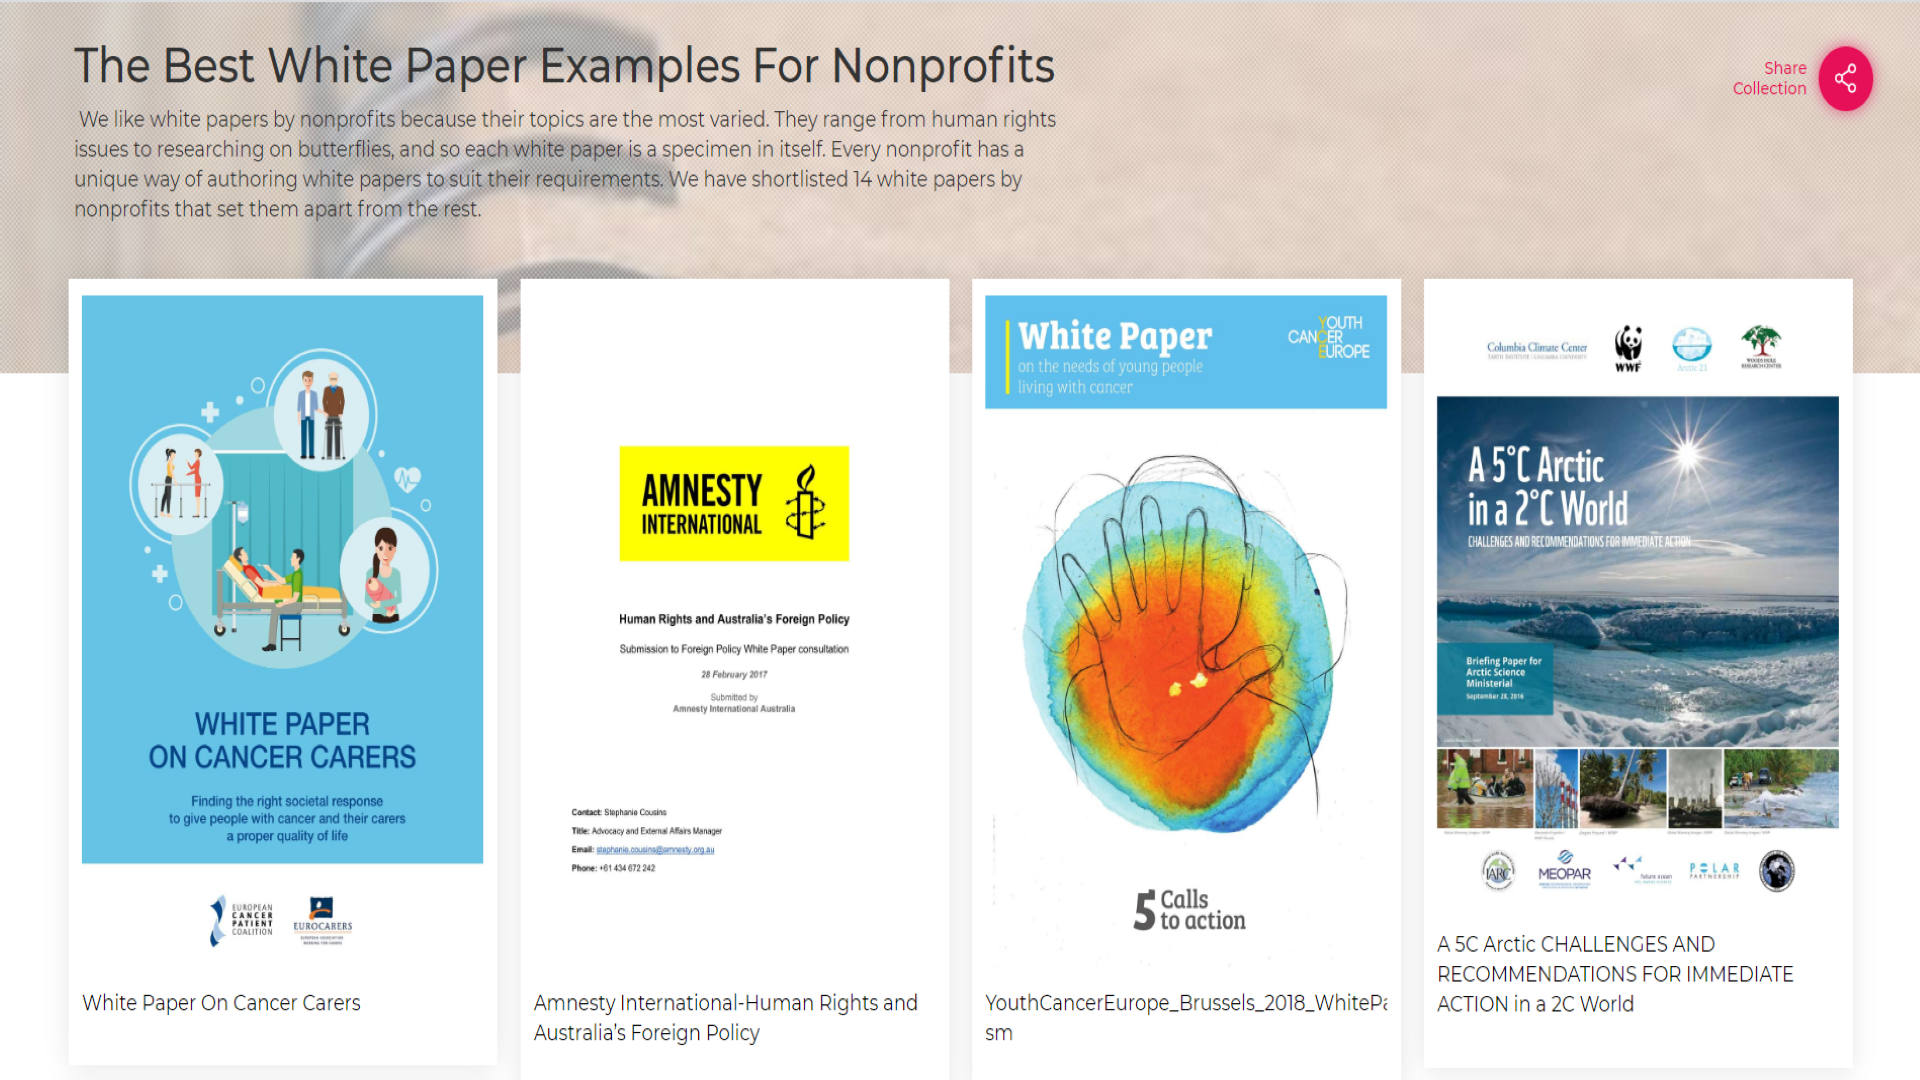 Best White Paper Examples for Nonprofits